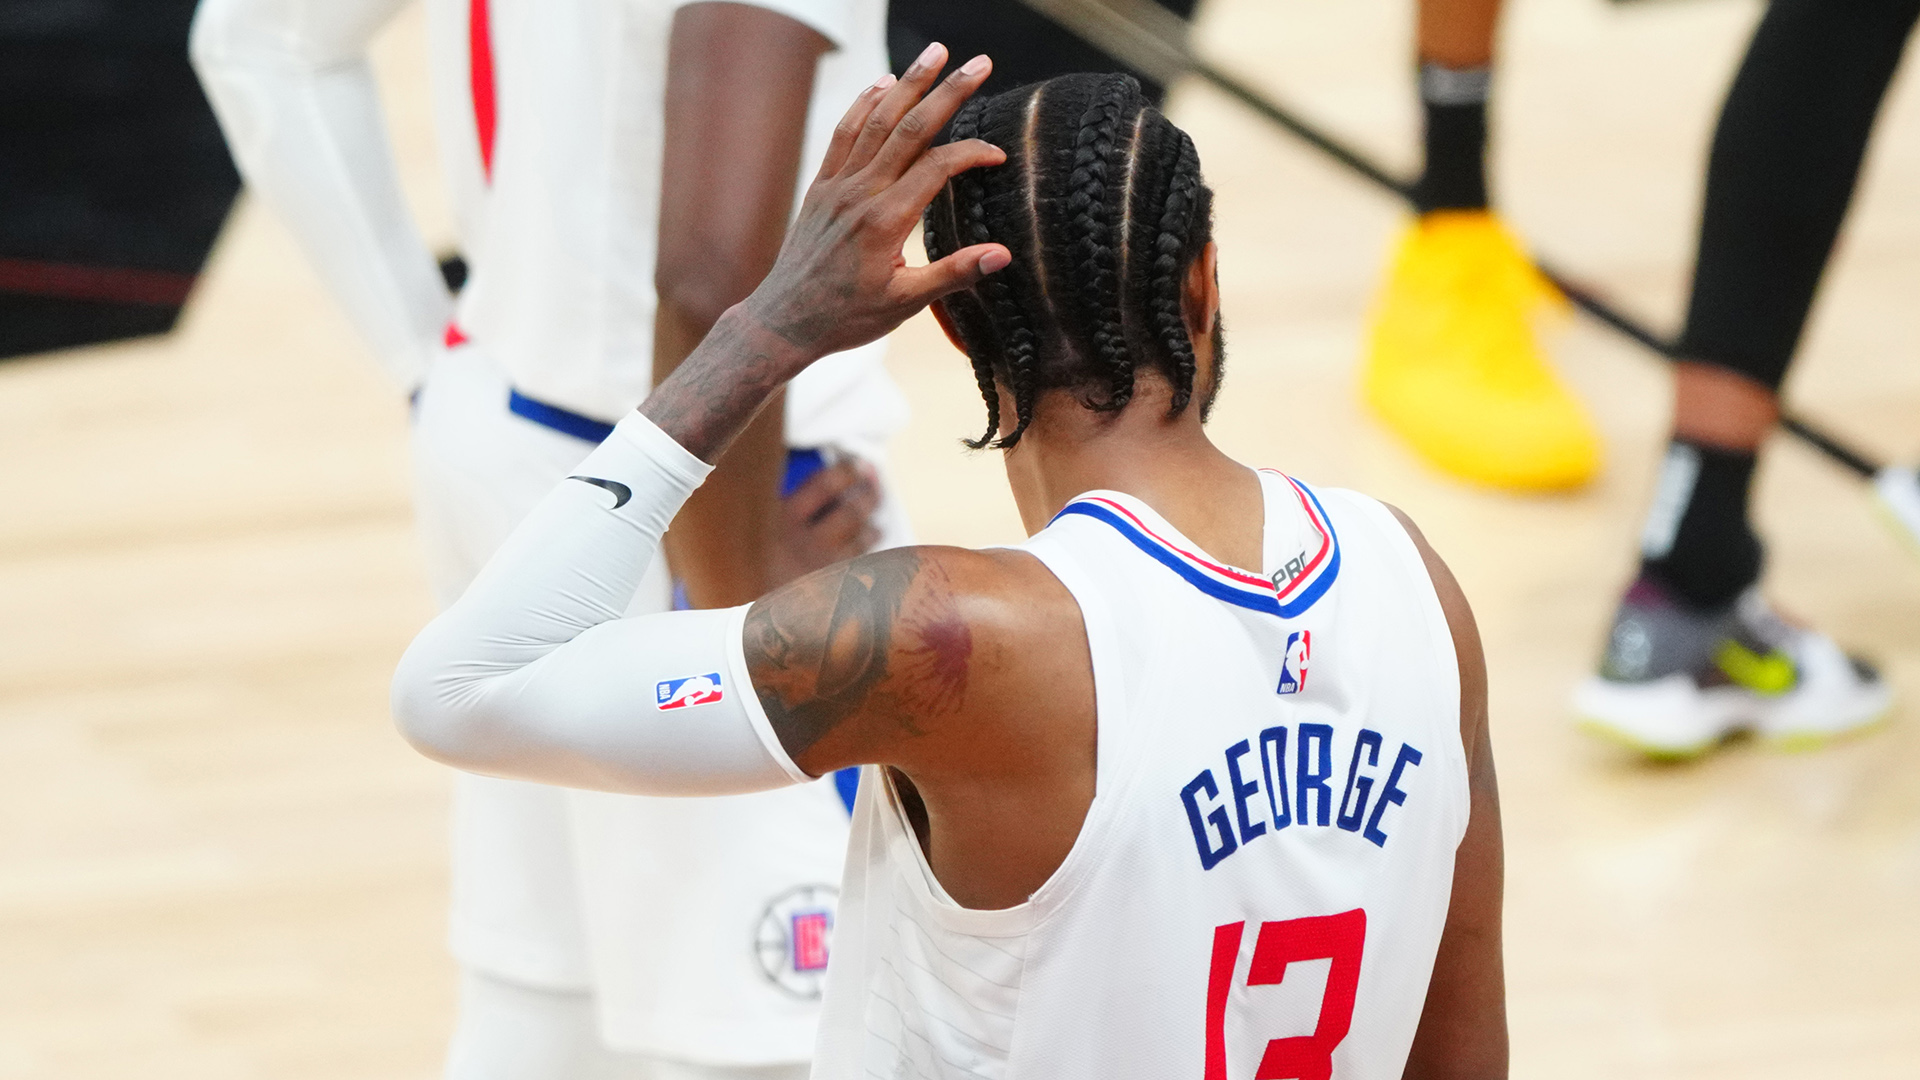 Down 2-0 again, LA Clippers know this time will be 'much tougher'